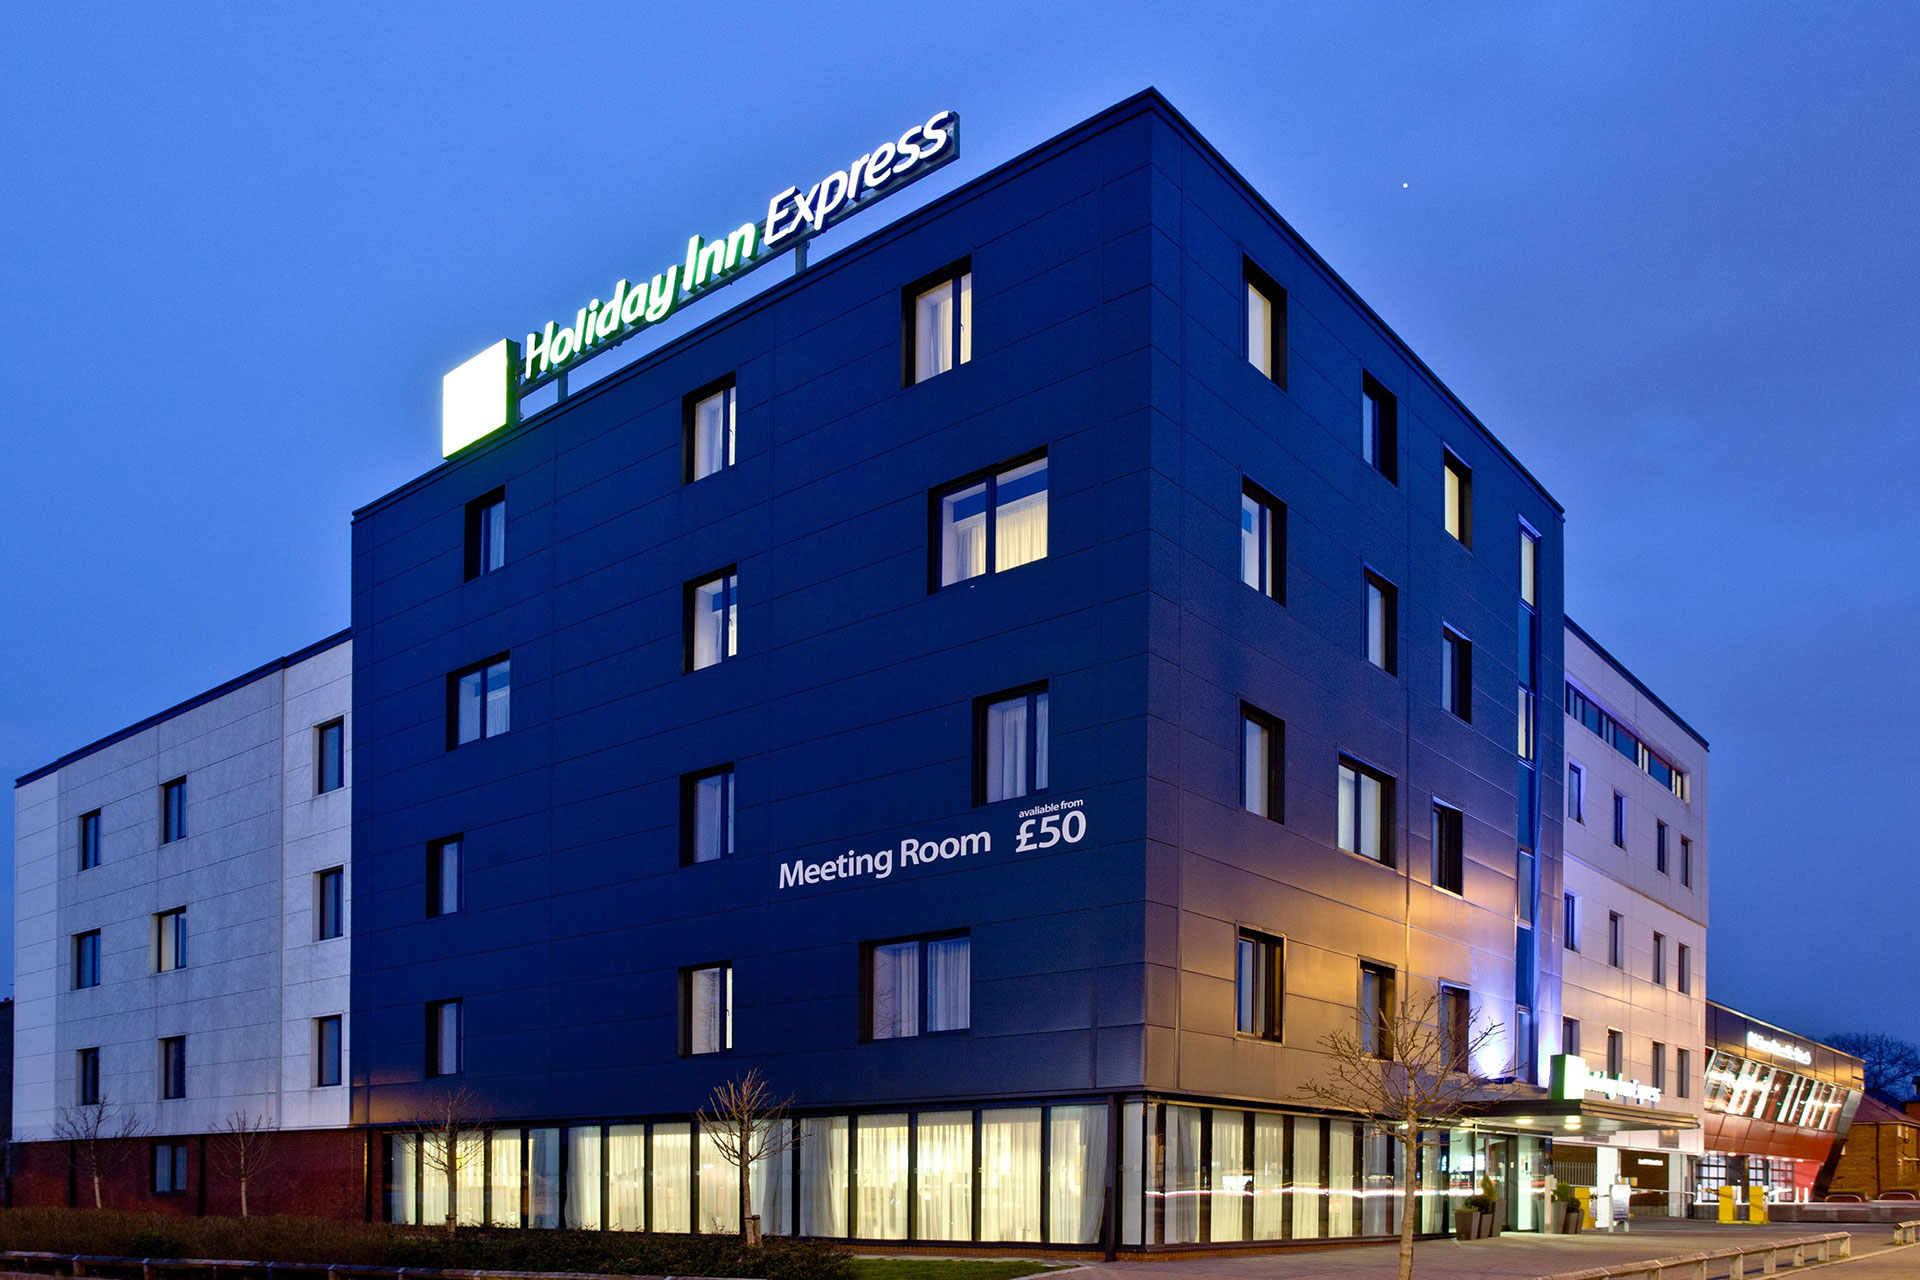 Holiday Inn Express Birmingham South